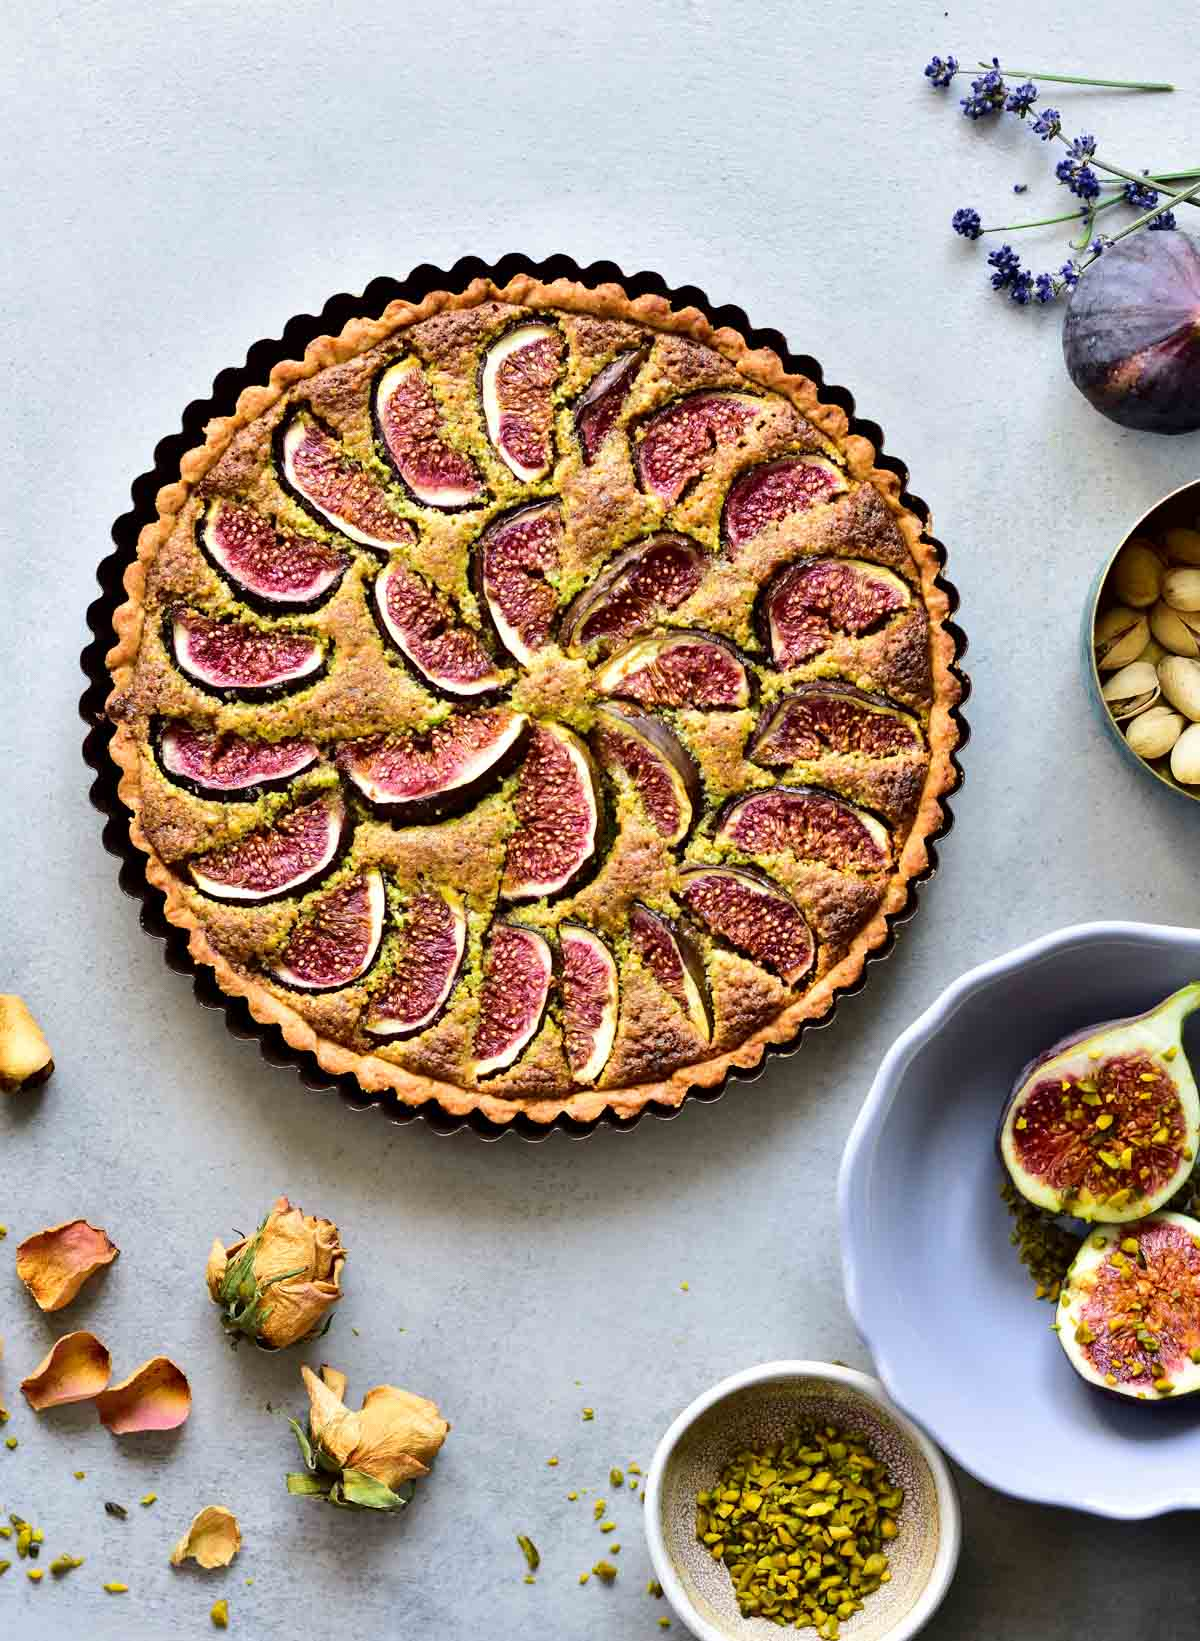 Fig tart with pistachio frangipane, figs and pistachios on the side